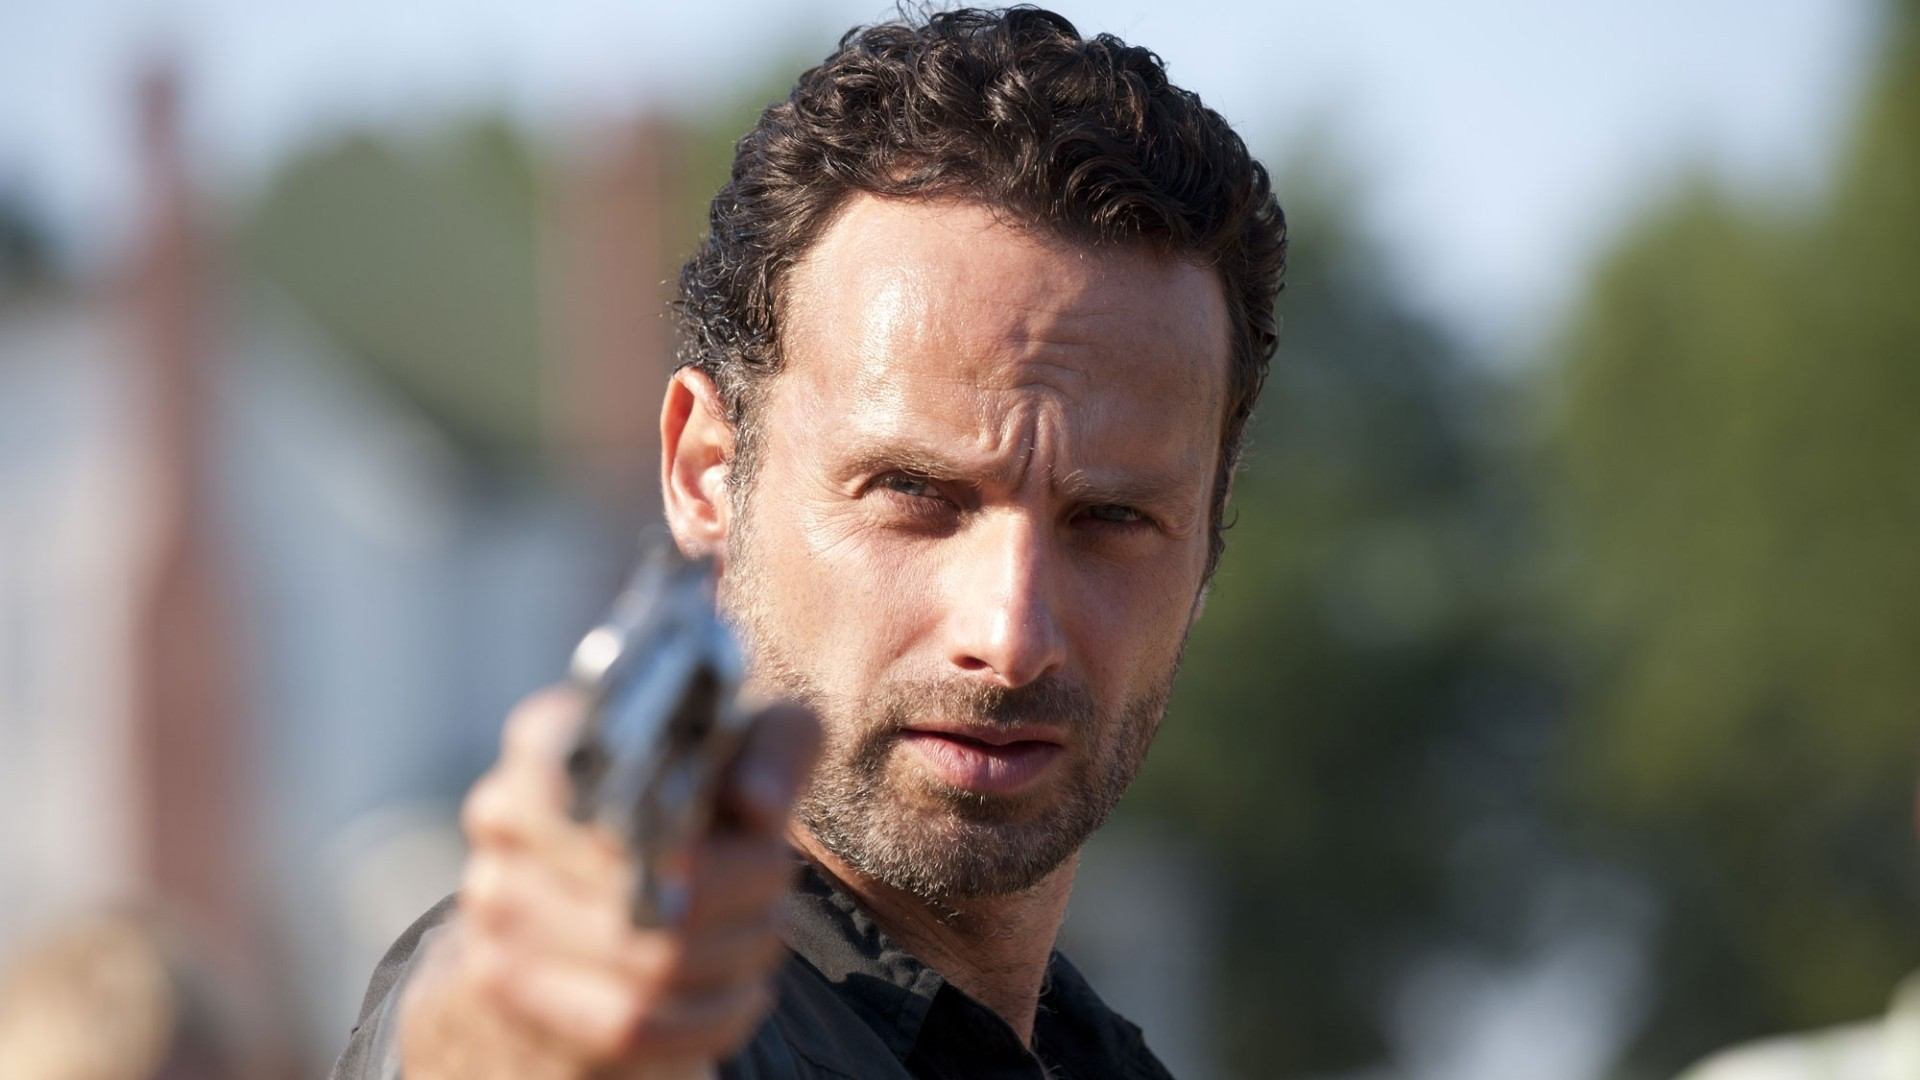 20507 download wallpaper Cinema, People, Actors, Men, Andrew Lincoln screensavers and pictures for free